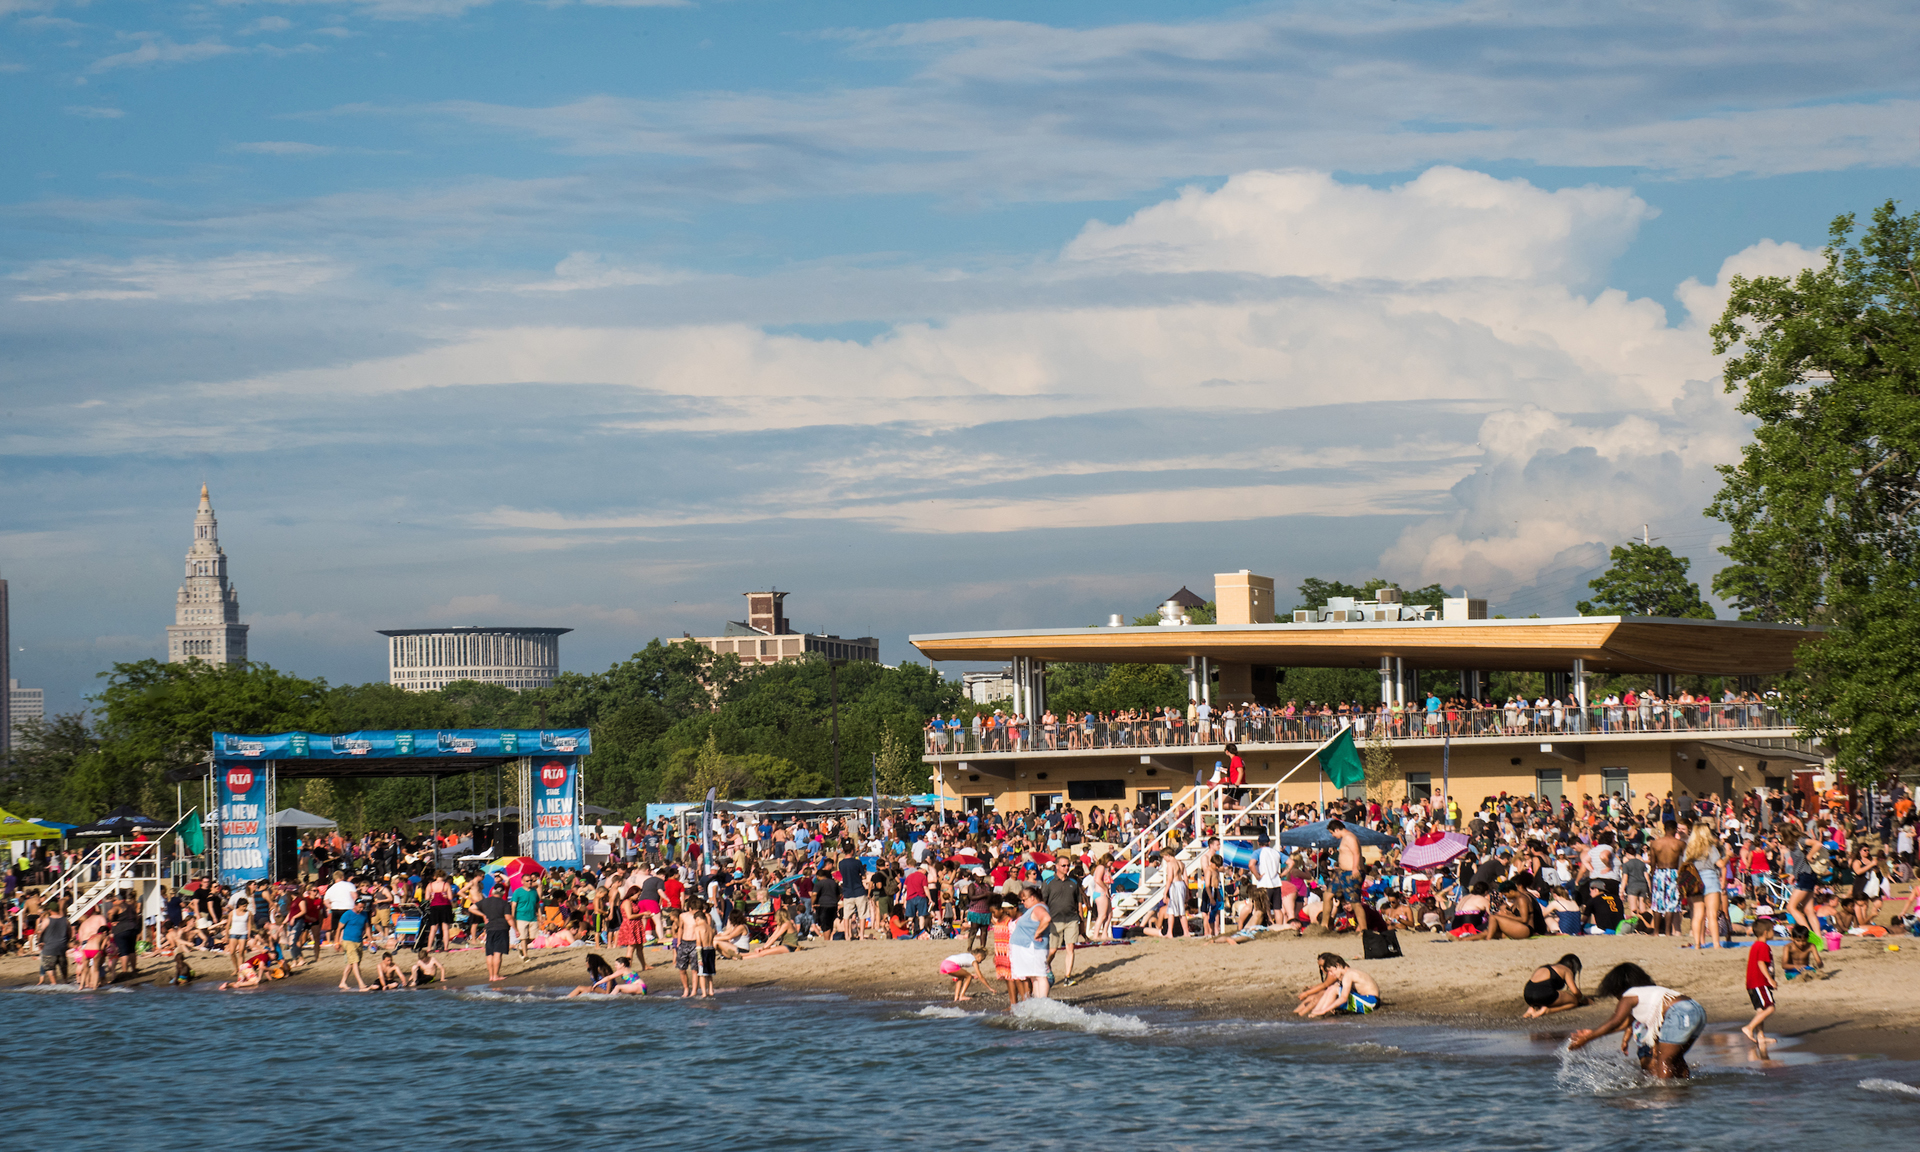 The Best 10 Beaches in Cleveland Ohio That You MUST Visit! 1 featured2 metroparks